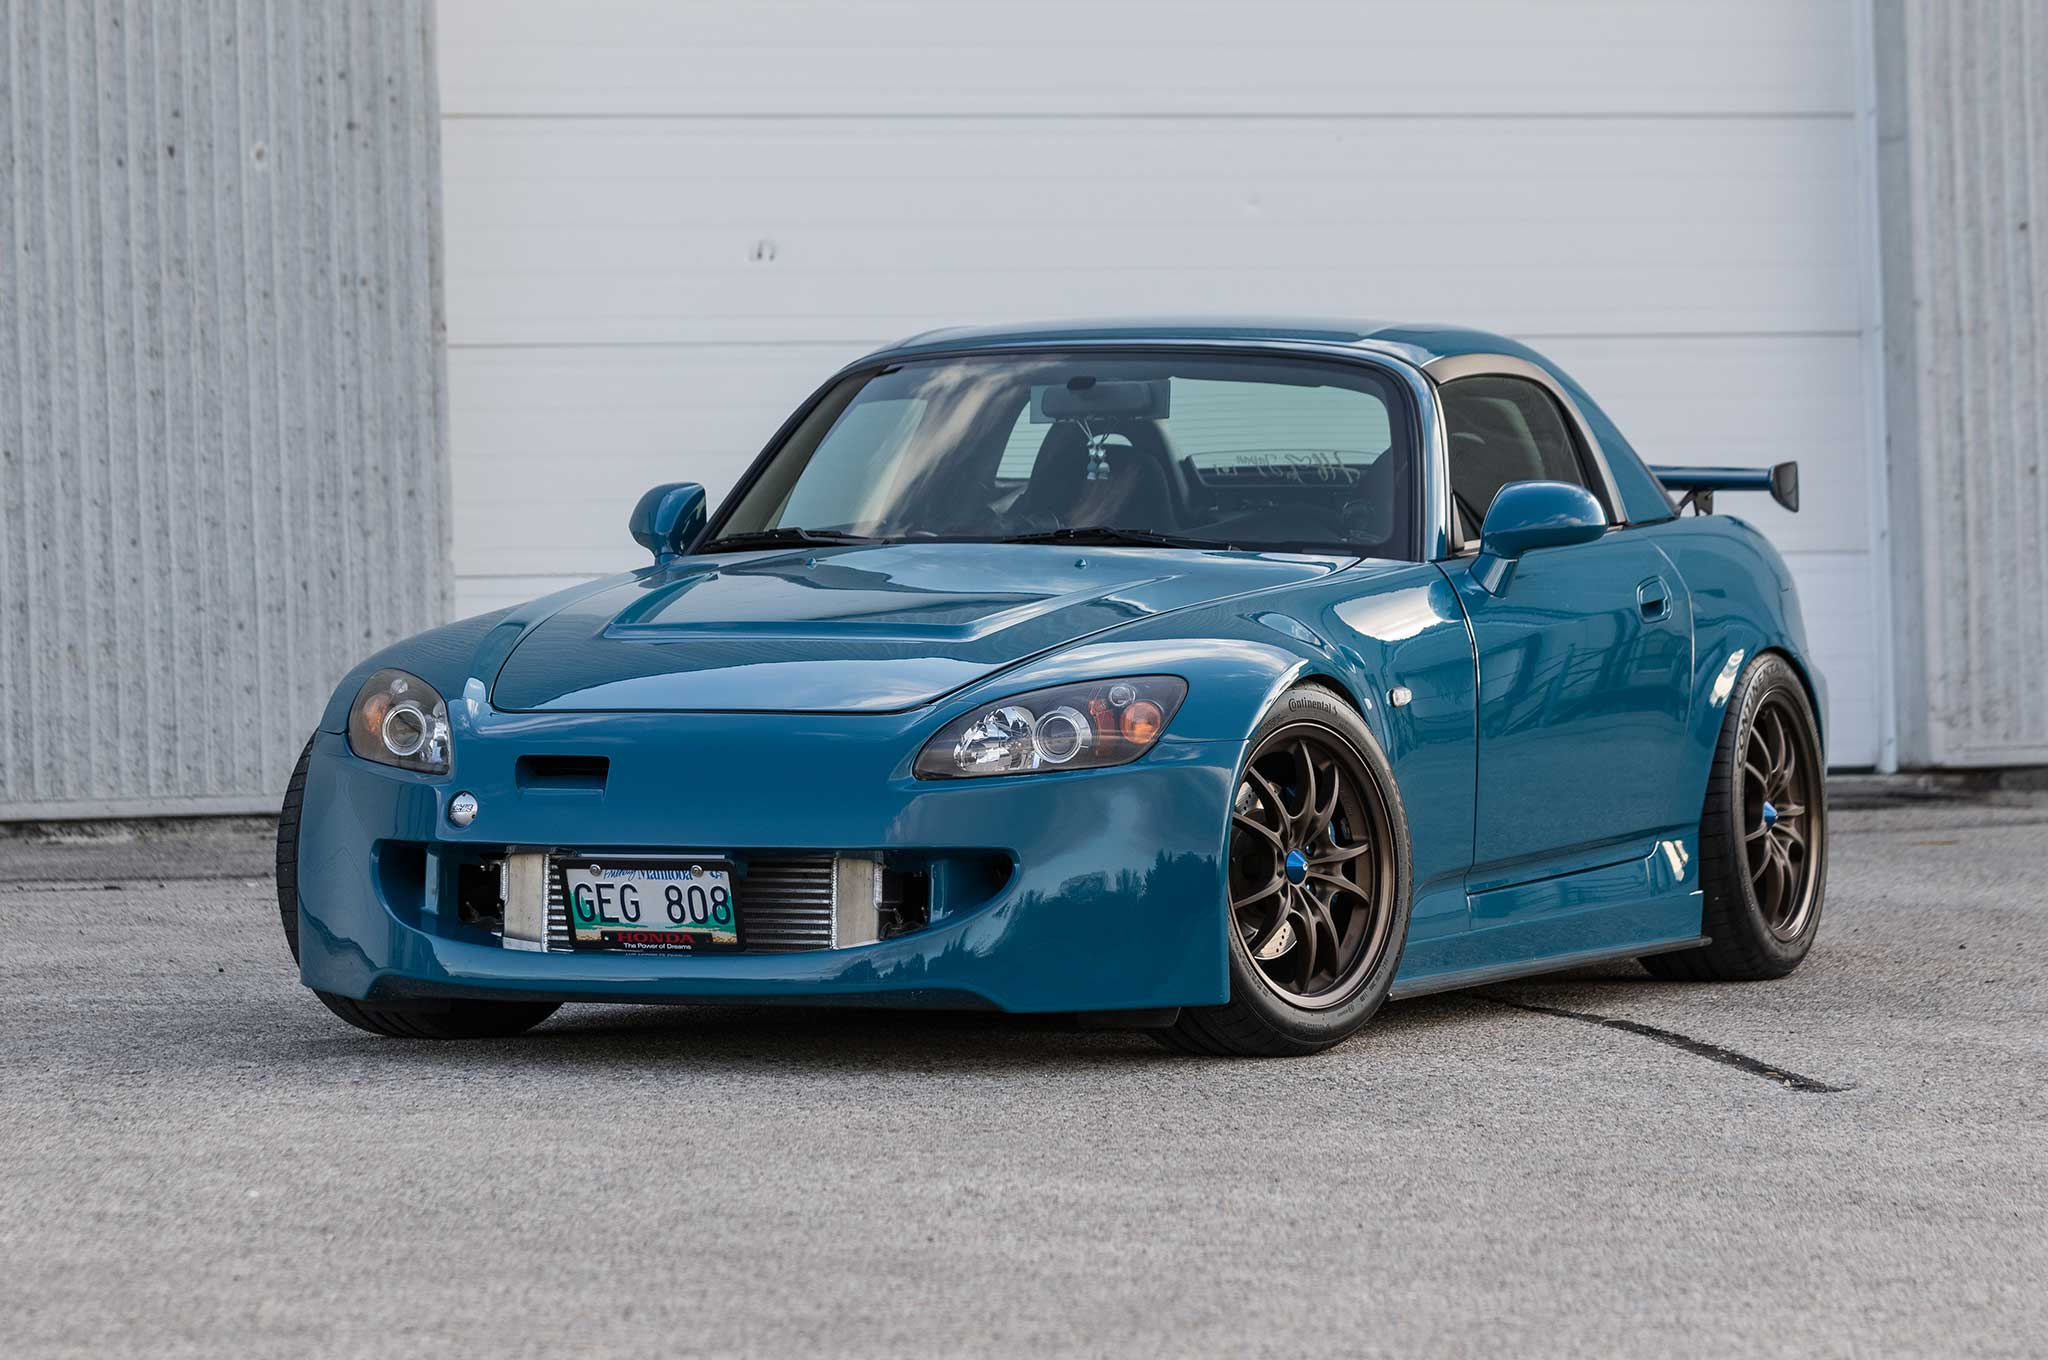 Laguna Seca Blue Mugen Turbo S2000